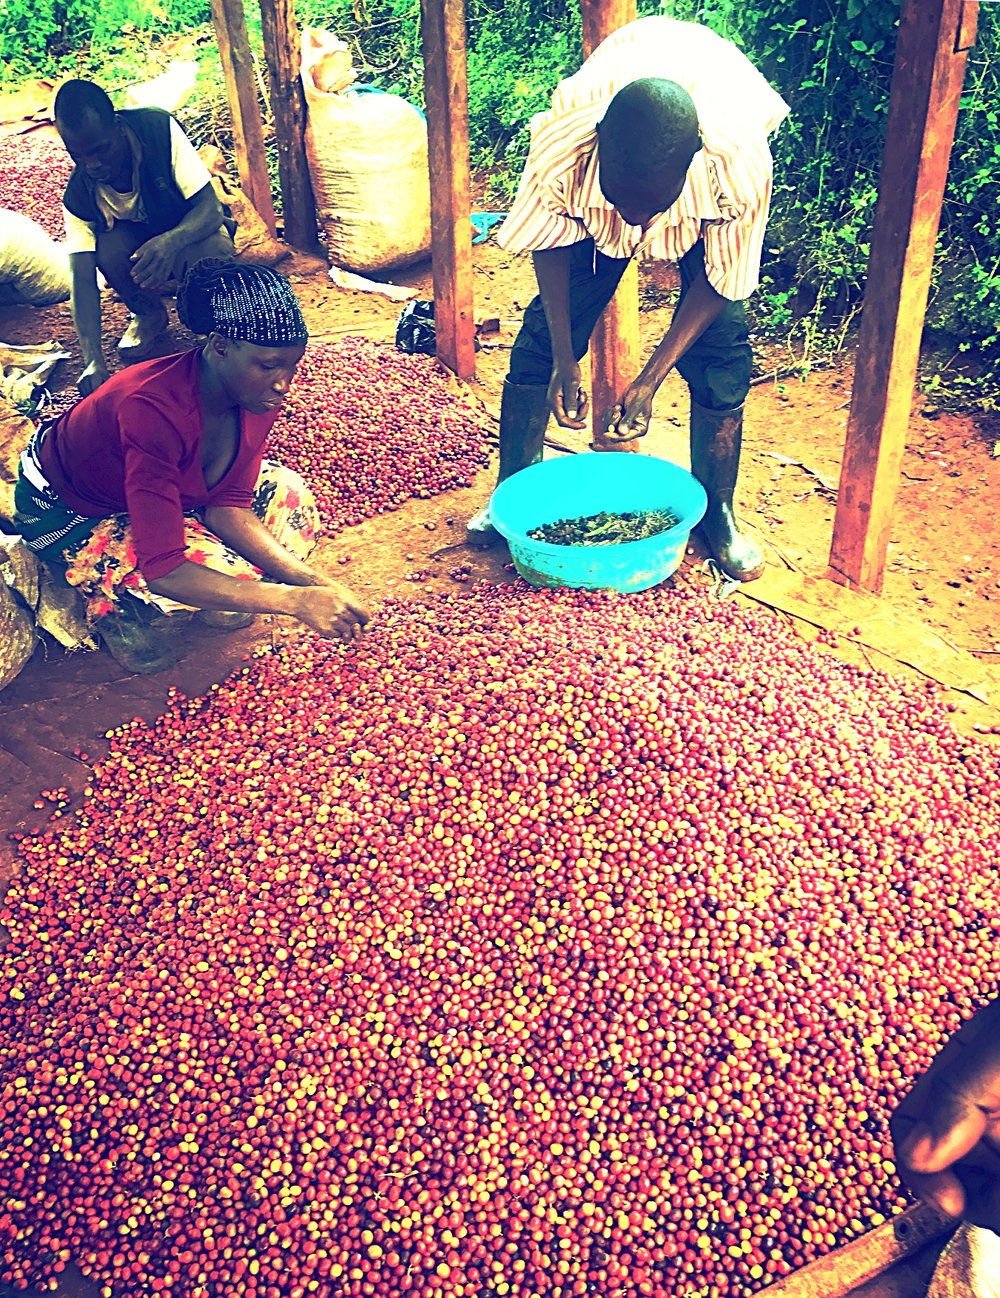 Processing  - We process our coffee using two methods namely; the wet method and dry method. During the Dry Method, the fresh cherries are spread out on a large tarp and dried in the sun. Farmers rake the cherries on a frequent basis to ensure that the coffee can dries evenly. With the Wet Method, coffee has this coat called the pulp which is removed and into parchment. Next, the coffee beans are placed in water whereas, the lighter beans float while the heavier beans sink to the bottom. Then these beans are taken to be fermented for a period of 48 hours where the parchment is dissolved naturally. The coffee is washed once again and dried to reach the desired moisture content.